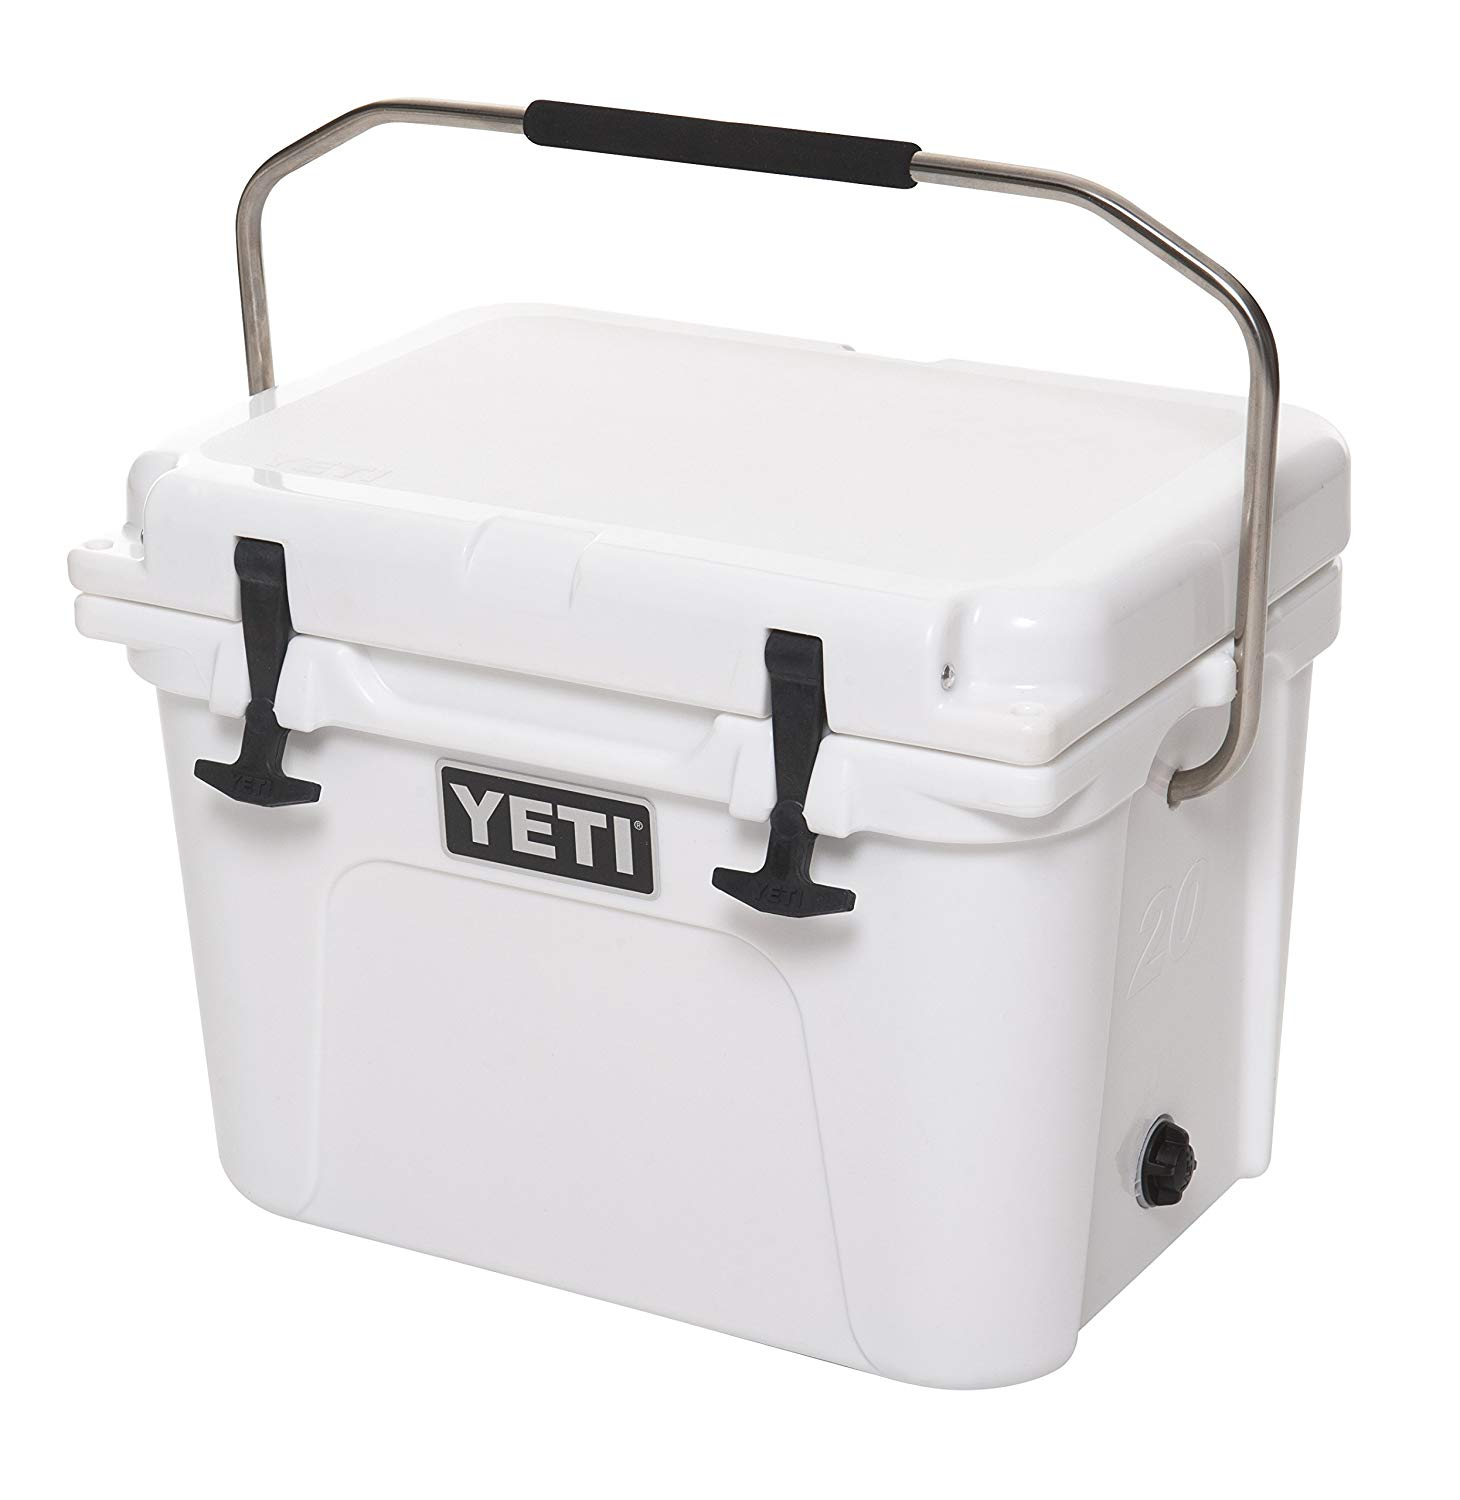 Top 10 Best Yeti Coolers For Hunting & Camping 2021 Reviews 2